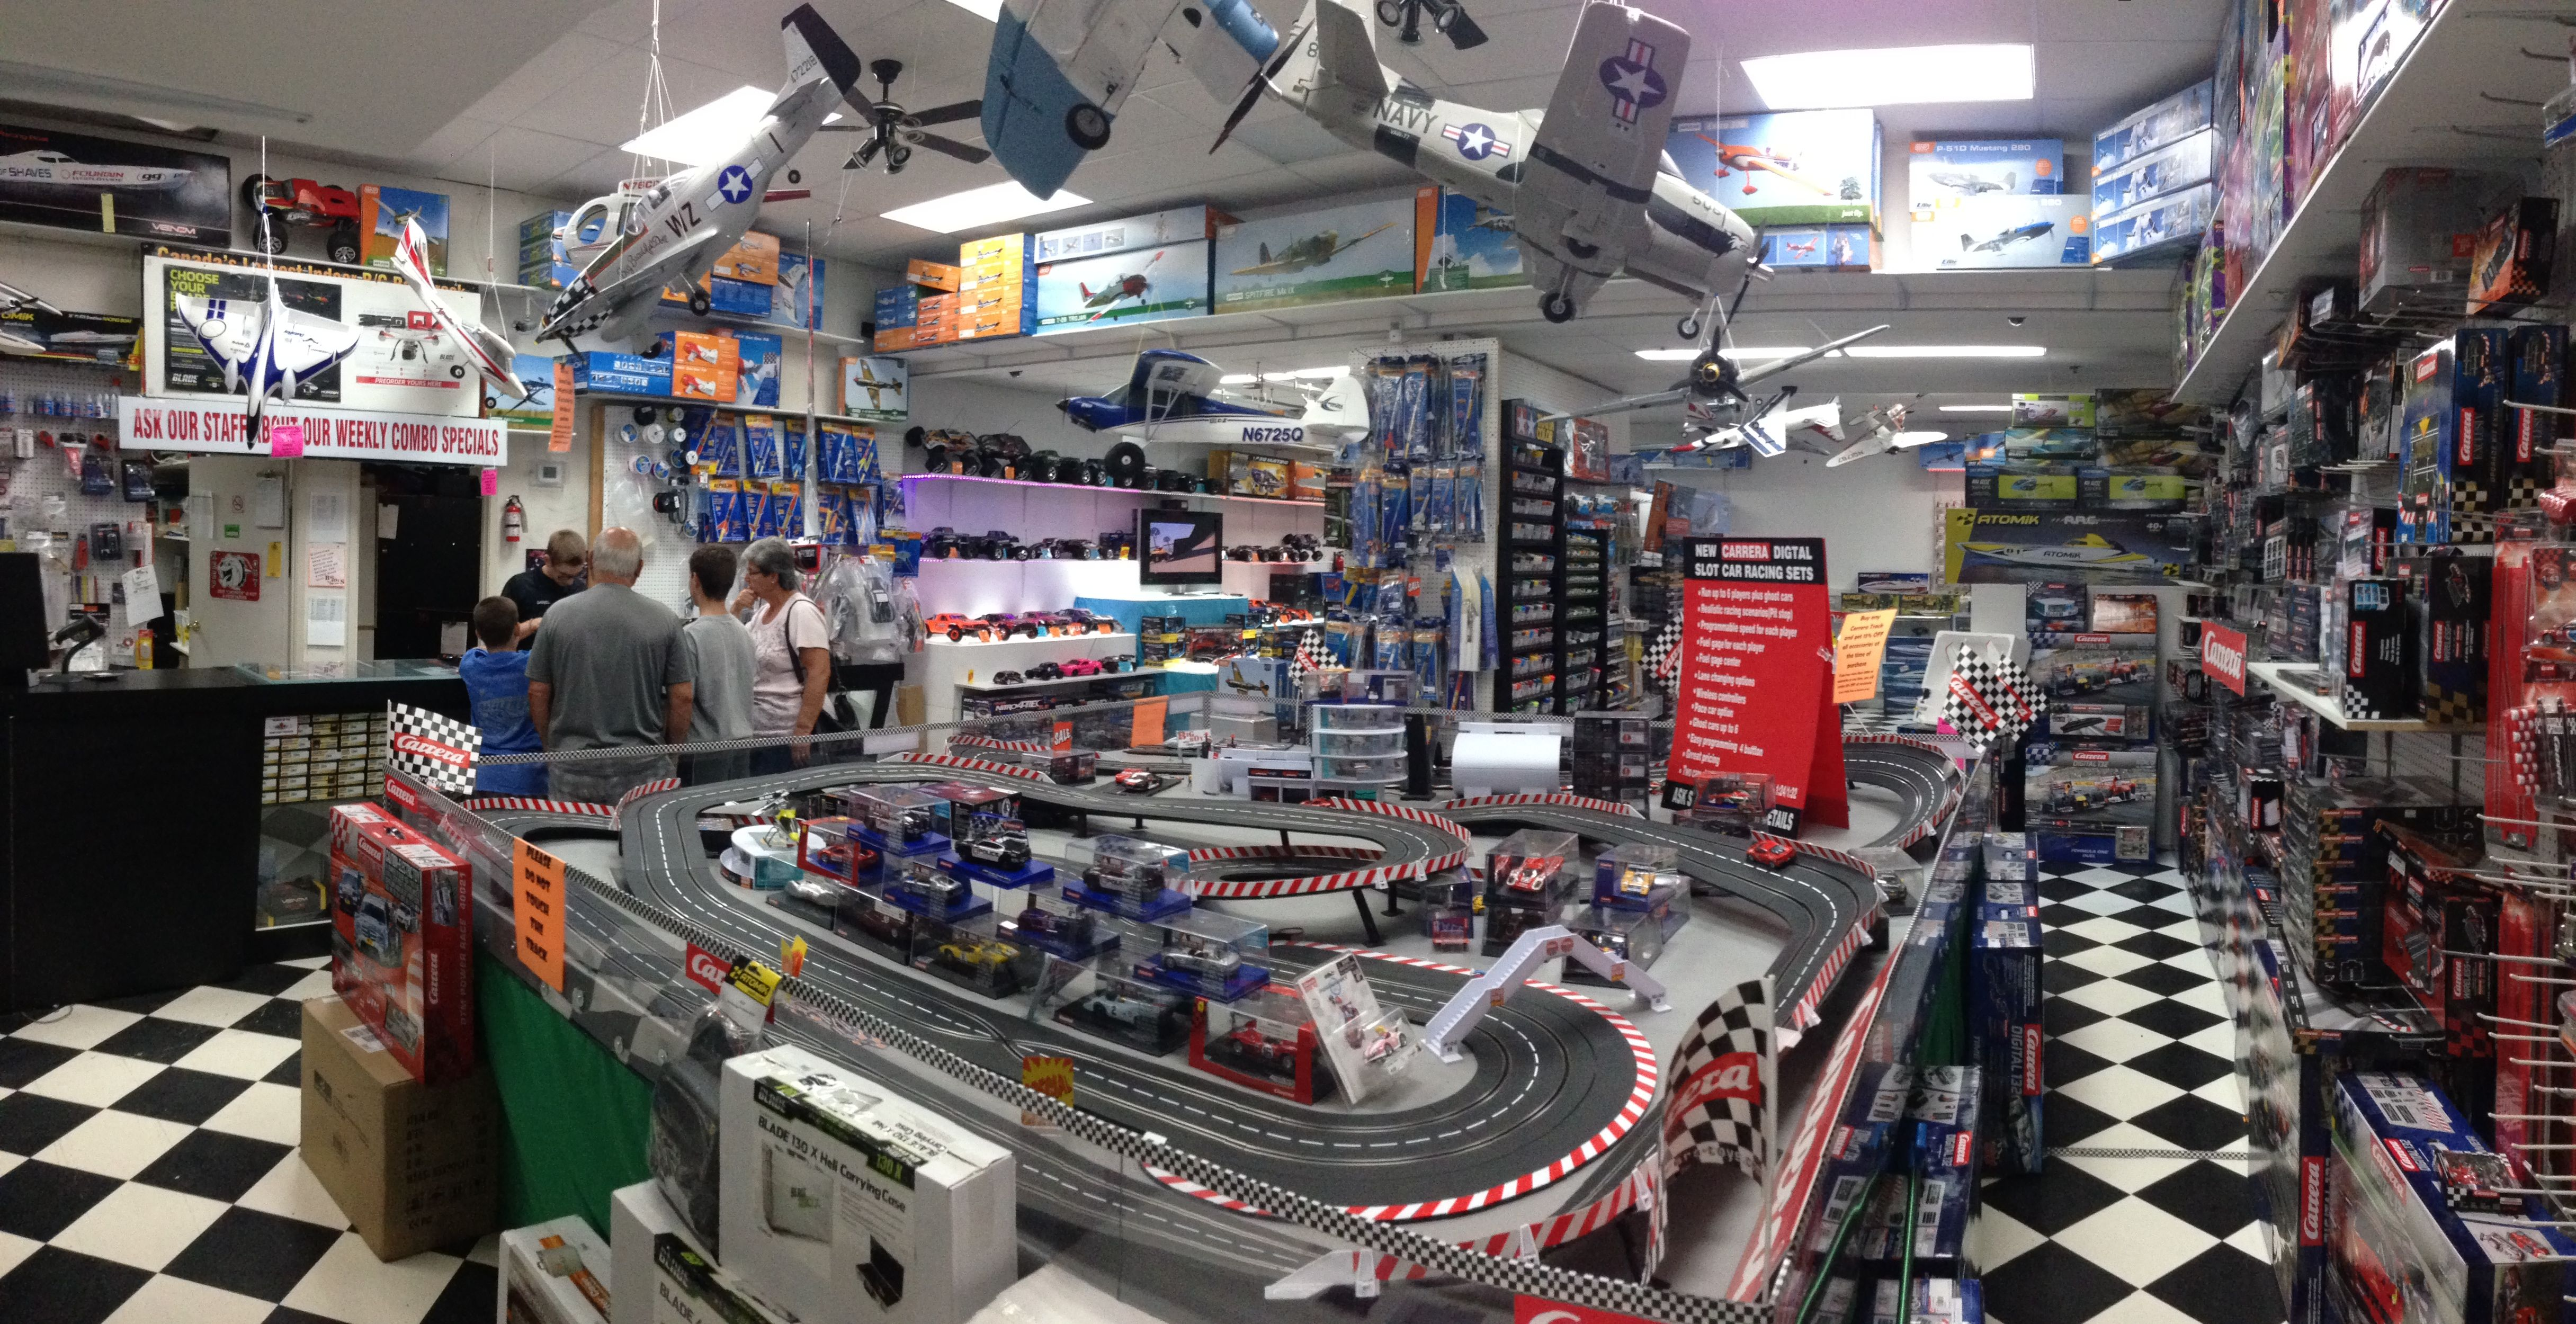 Cool Toys For Big Boys : Inside the store at big boys with cool toys mom dad and the